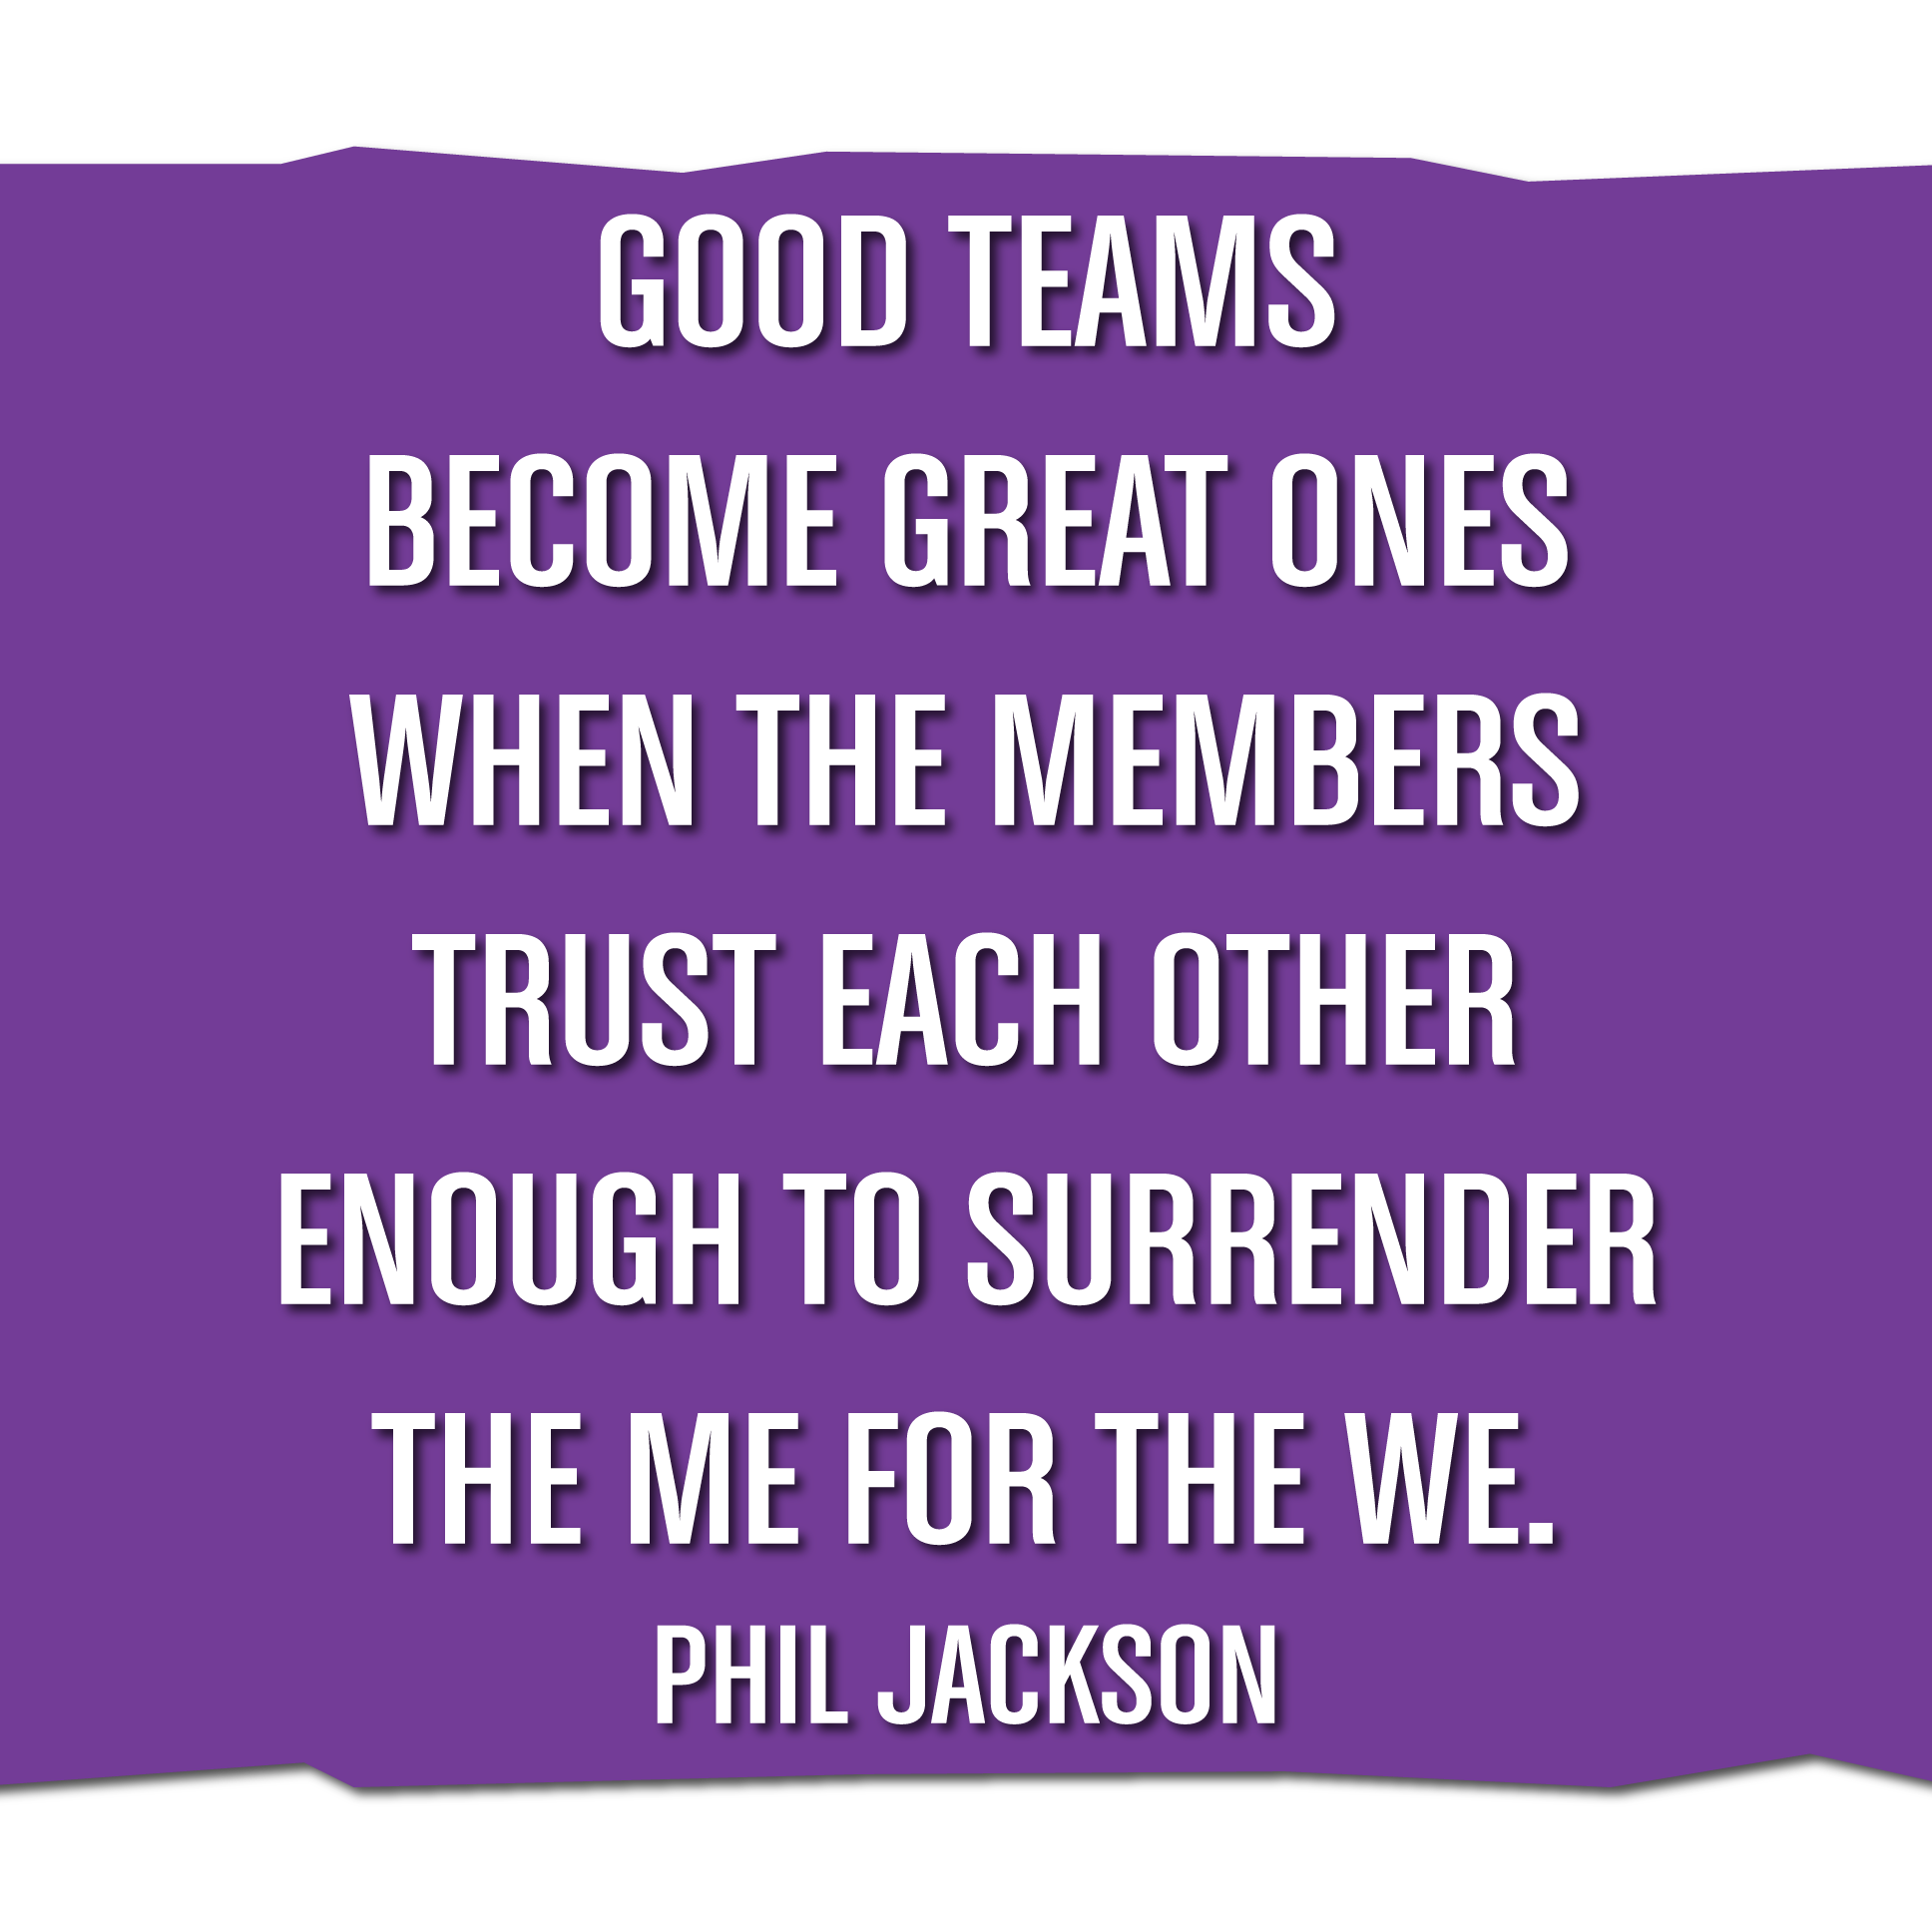 Motivational Quotes For Sports Teams: Playmakers Are Team Players And Help Make Their Teammates